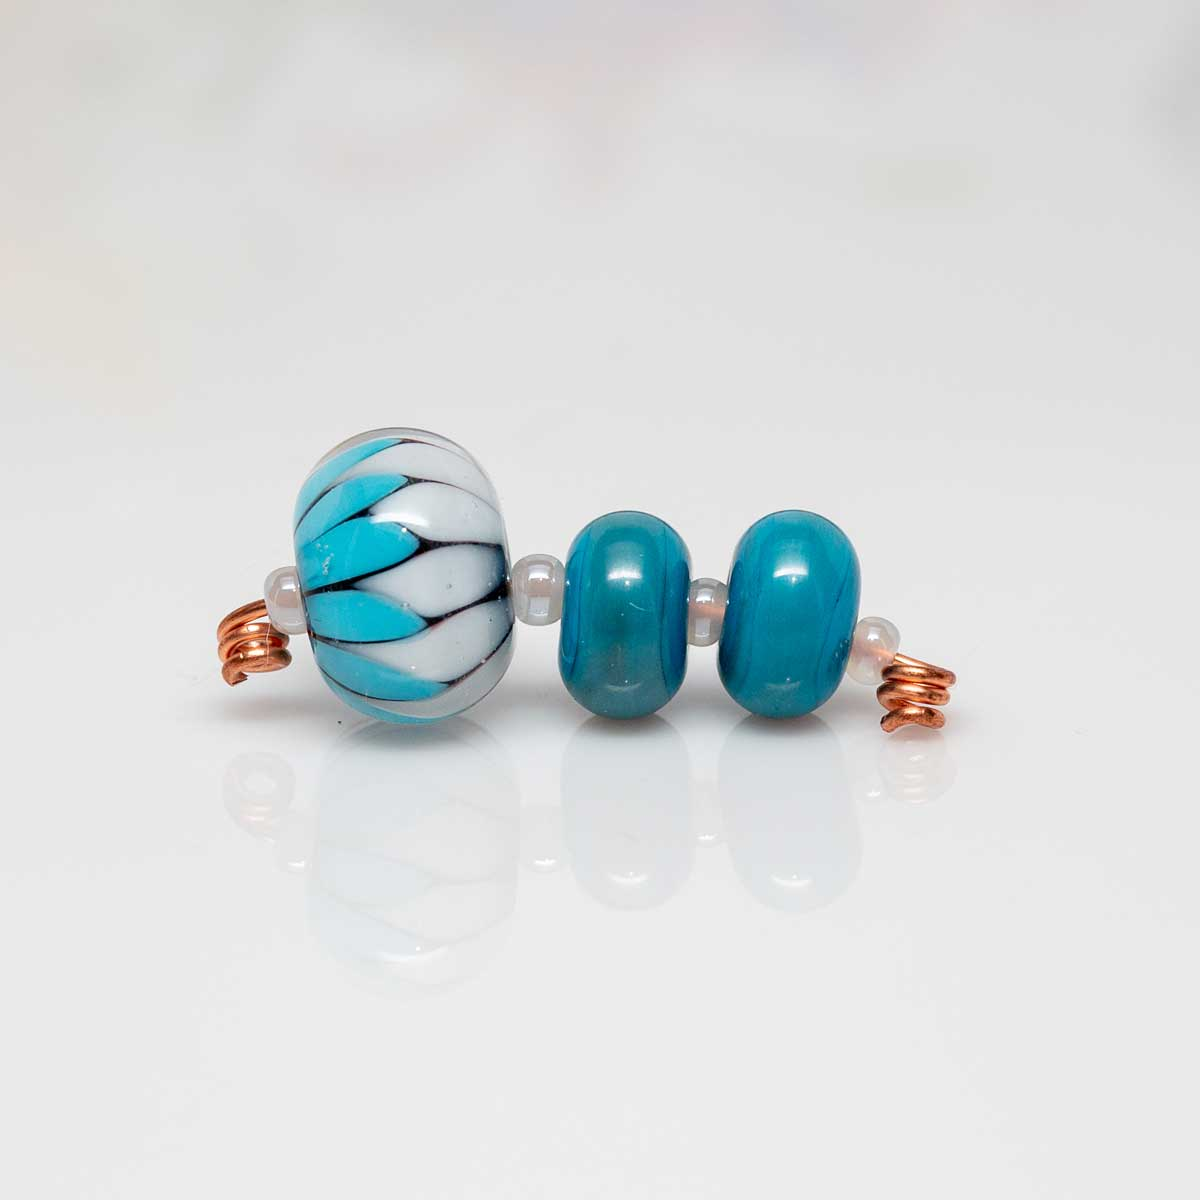 Dark Turquoise Triangle beads